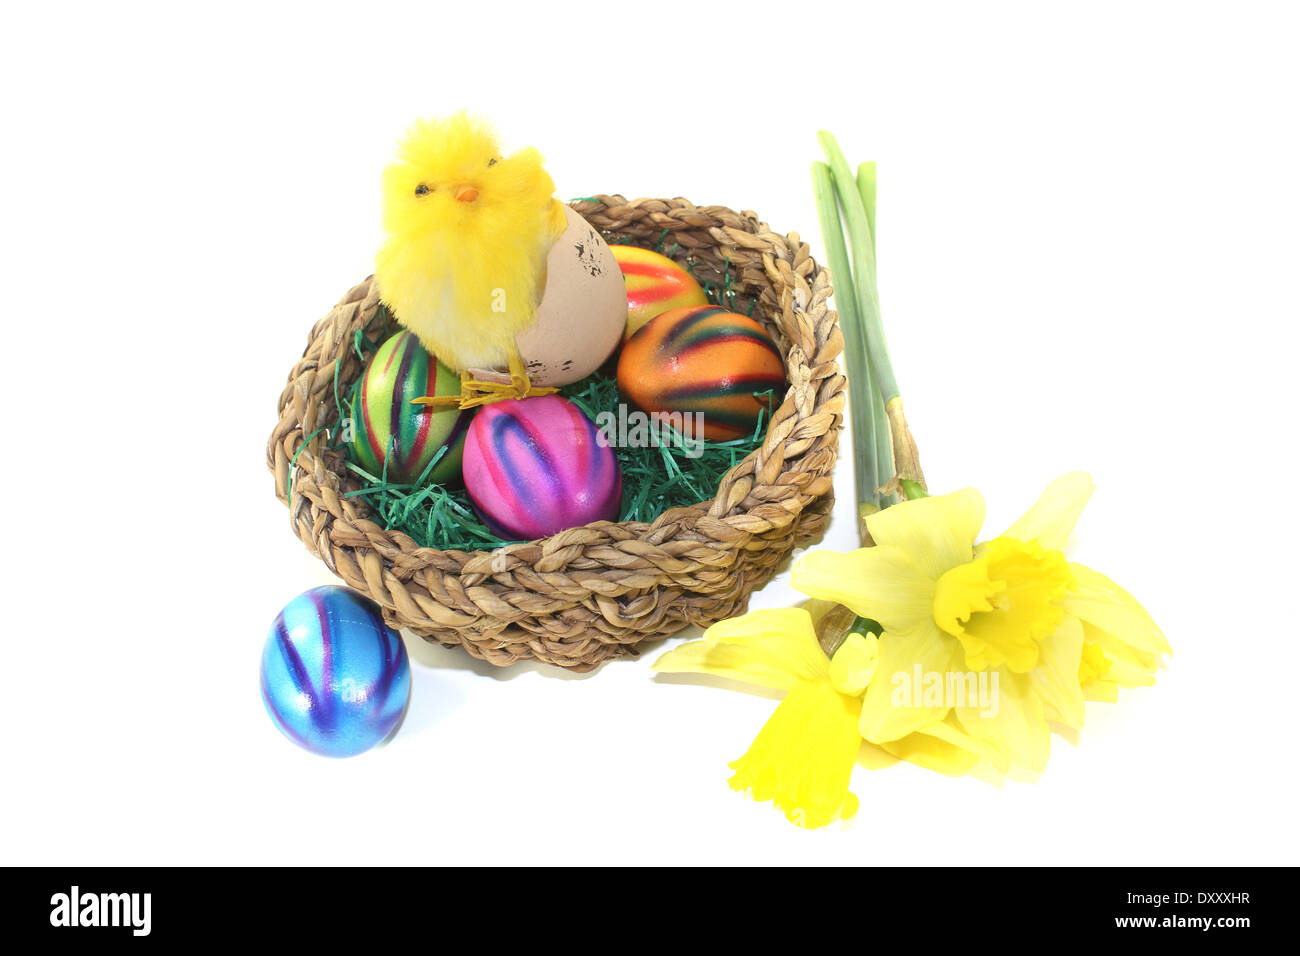 Easter Basket with chick on a light background - Stock Image